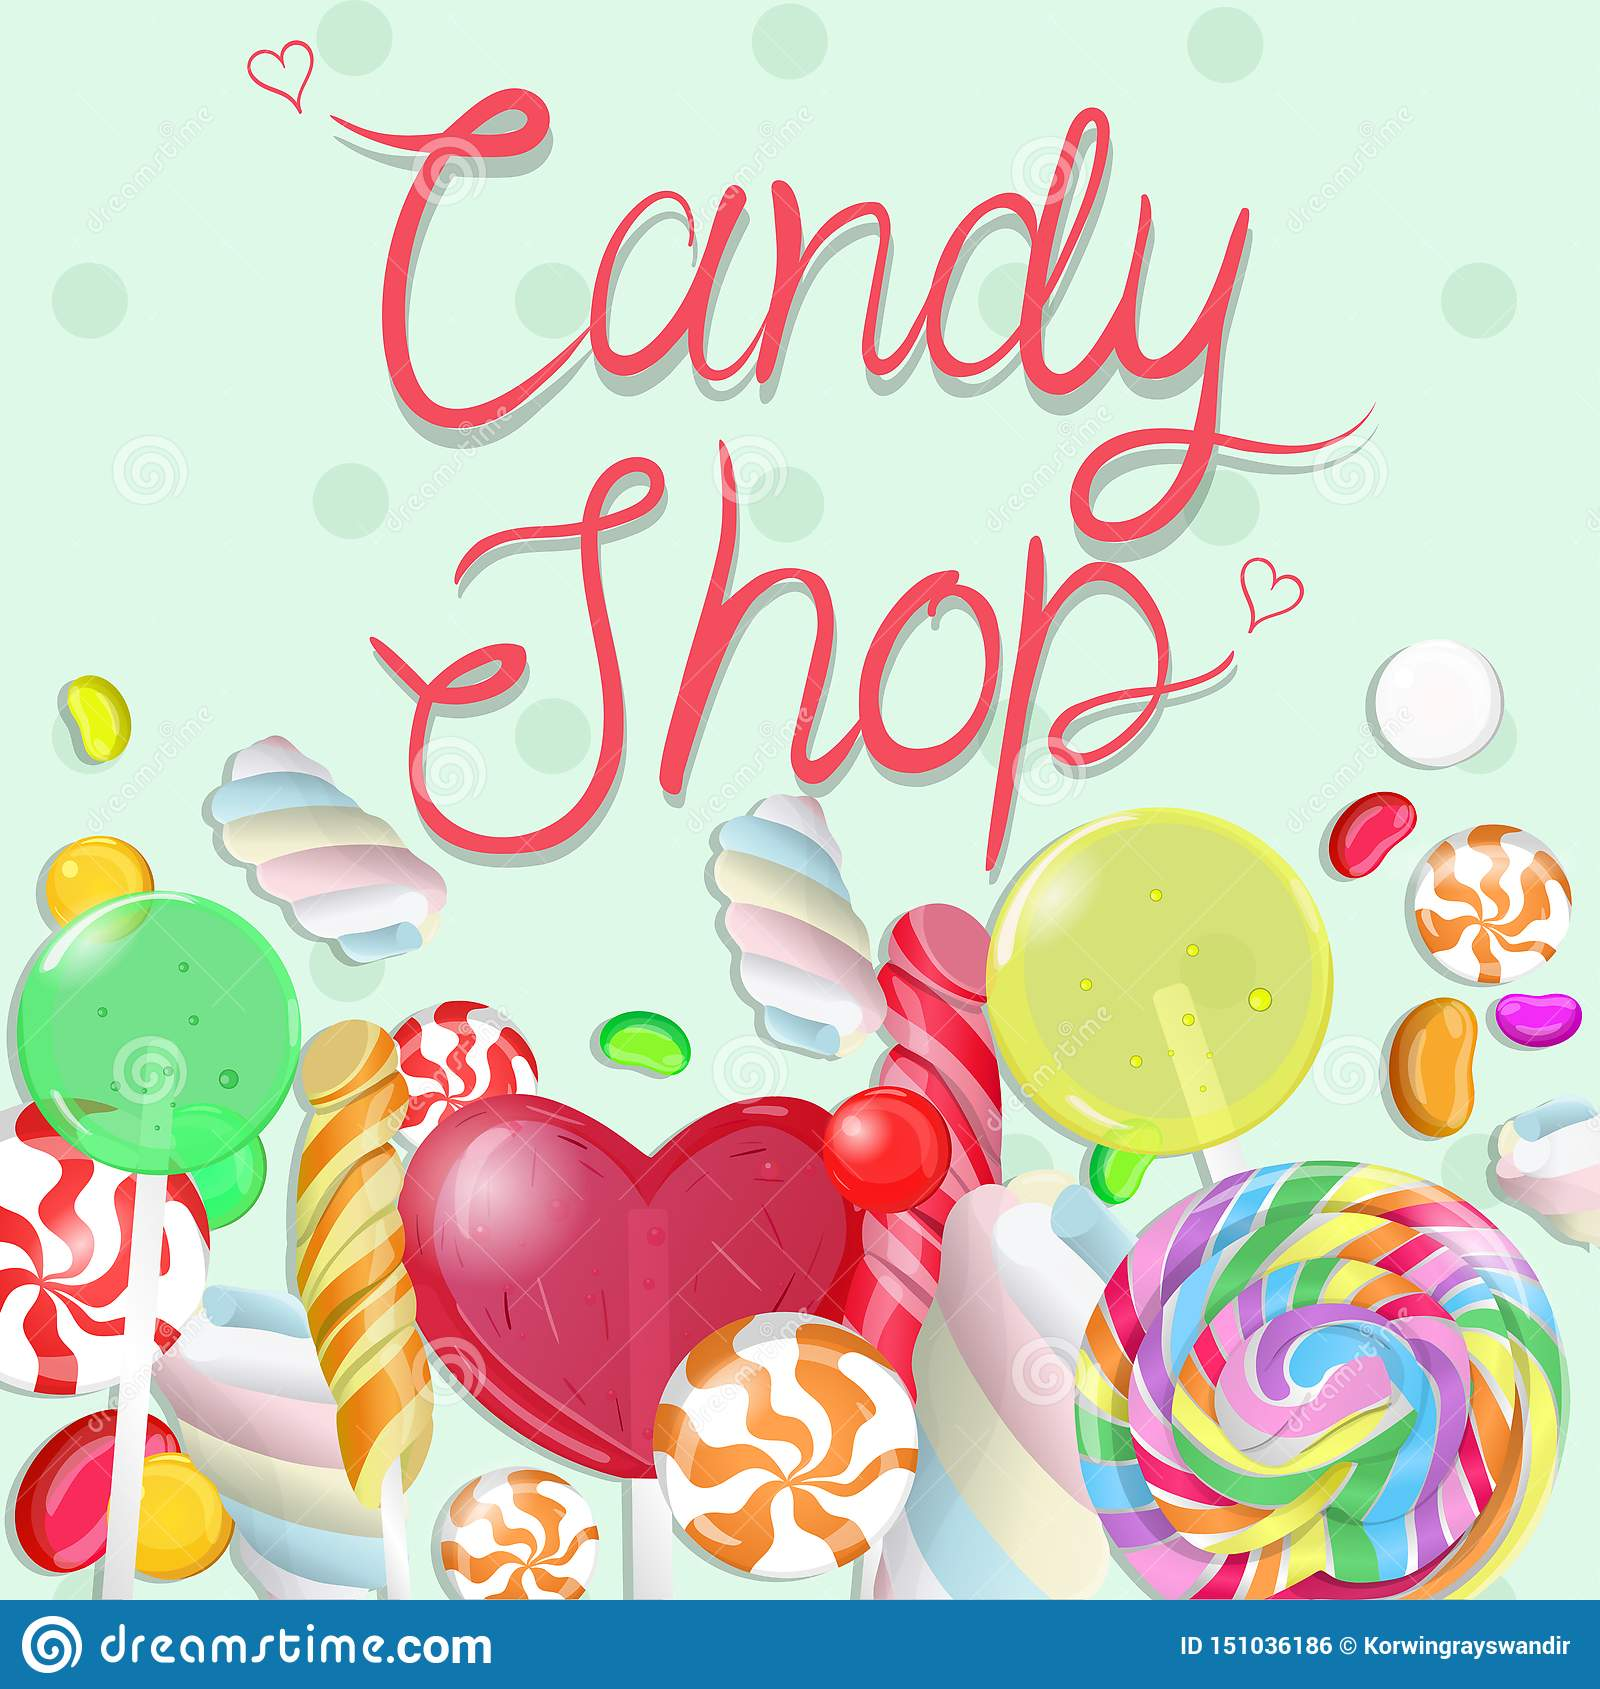 Candy border. Inscription Candy shop. Vectrical illustration